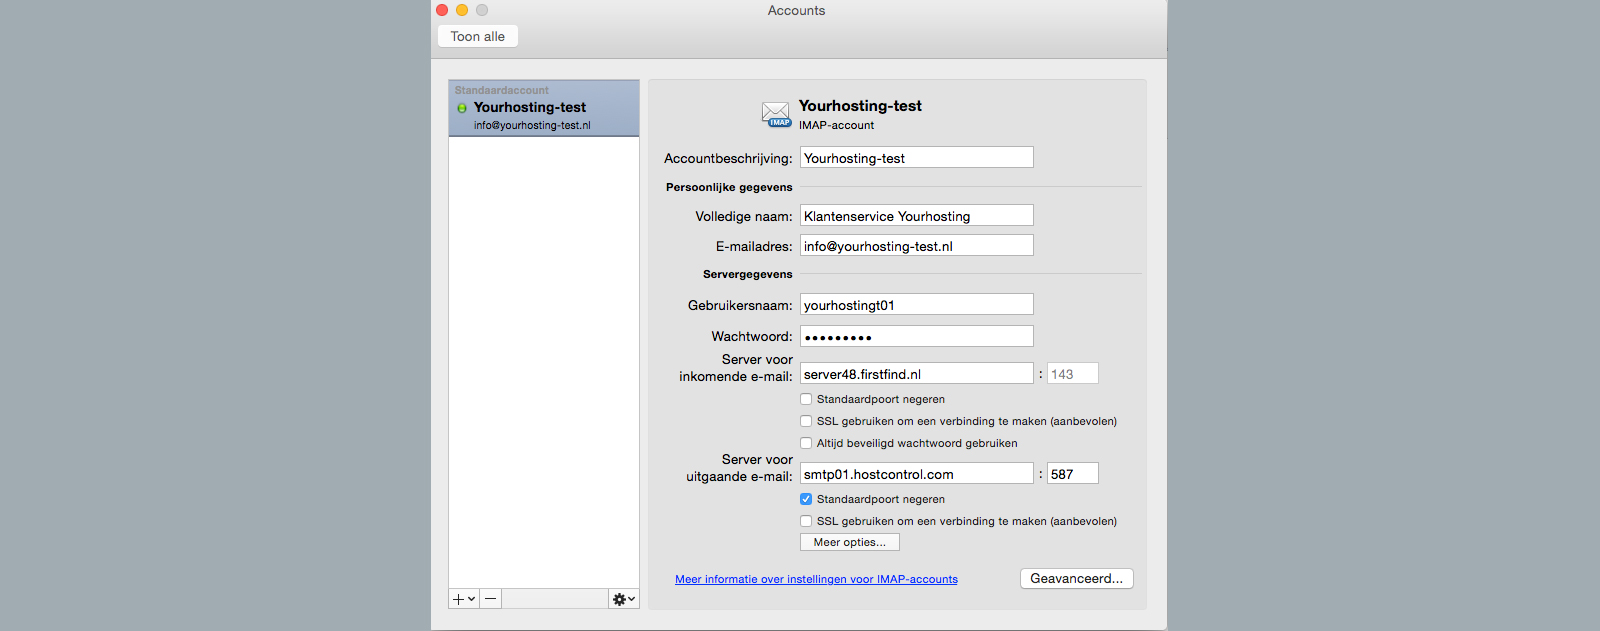 outlook 2011 for mac accounts scherm